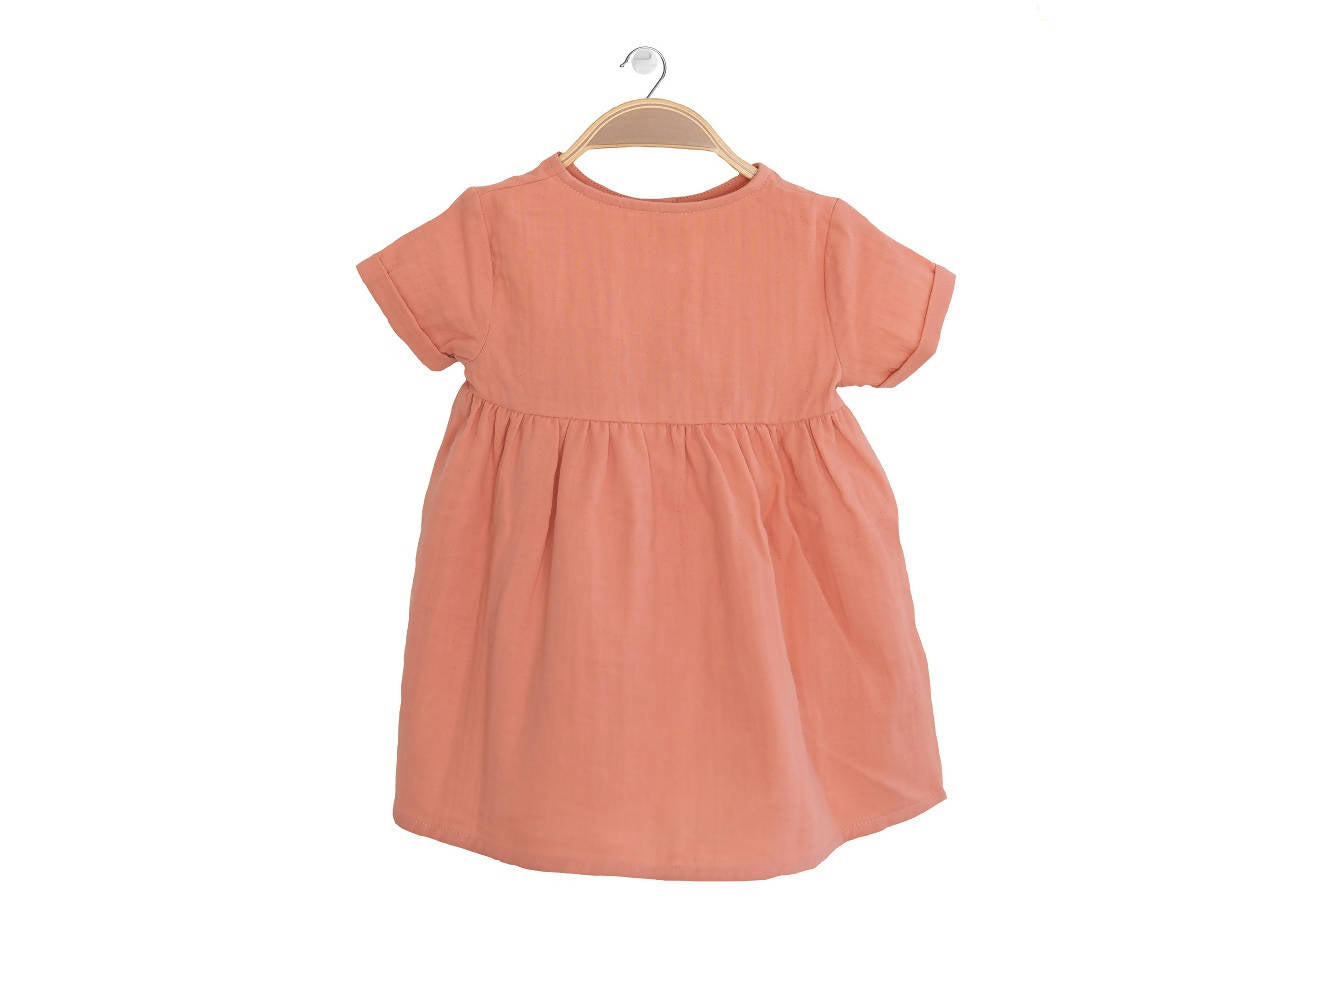 Peter Jo Kids Organic Dress Harmony for baby girls made of organic muslin cotton peach 1